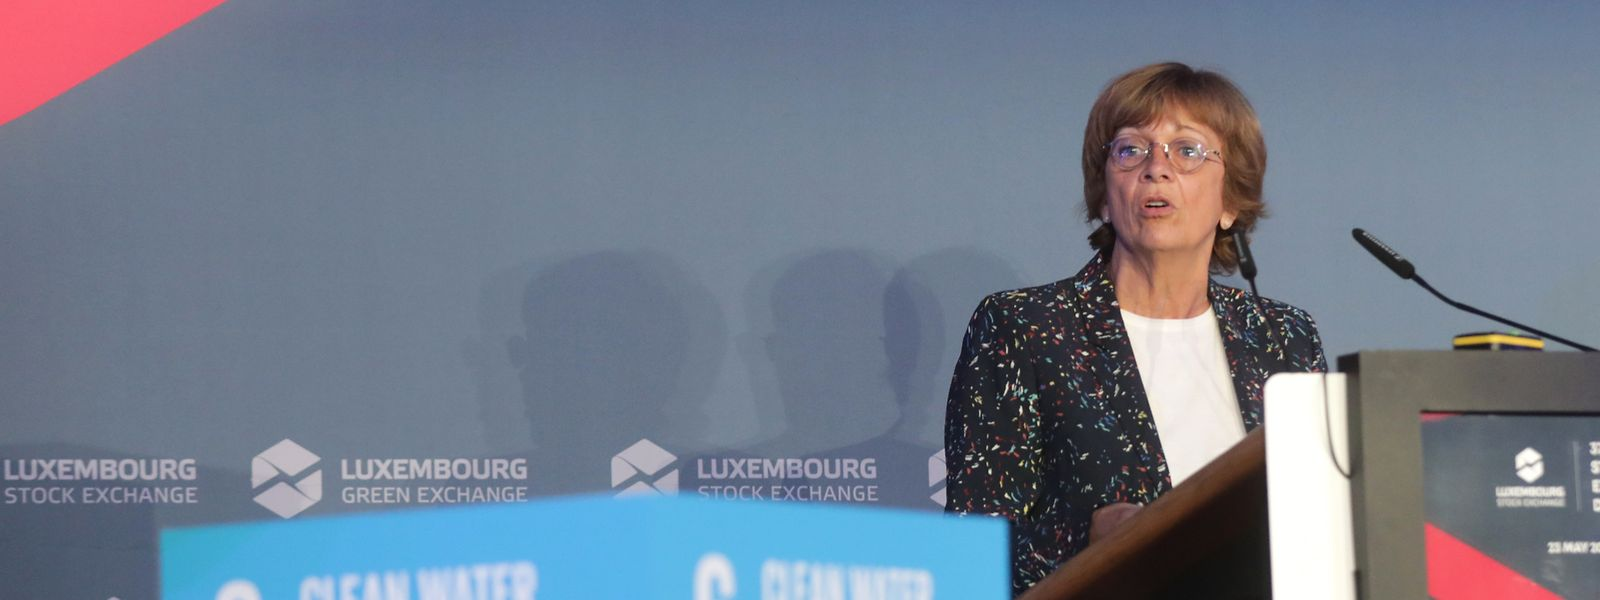 Isabelle Durant pendant son discours au «Luxembourg Stock Exchange Day».